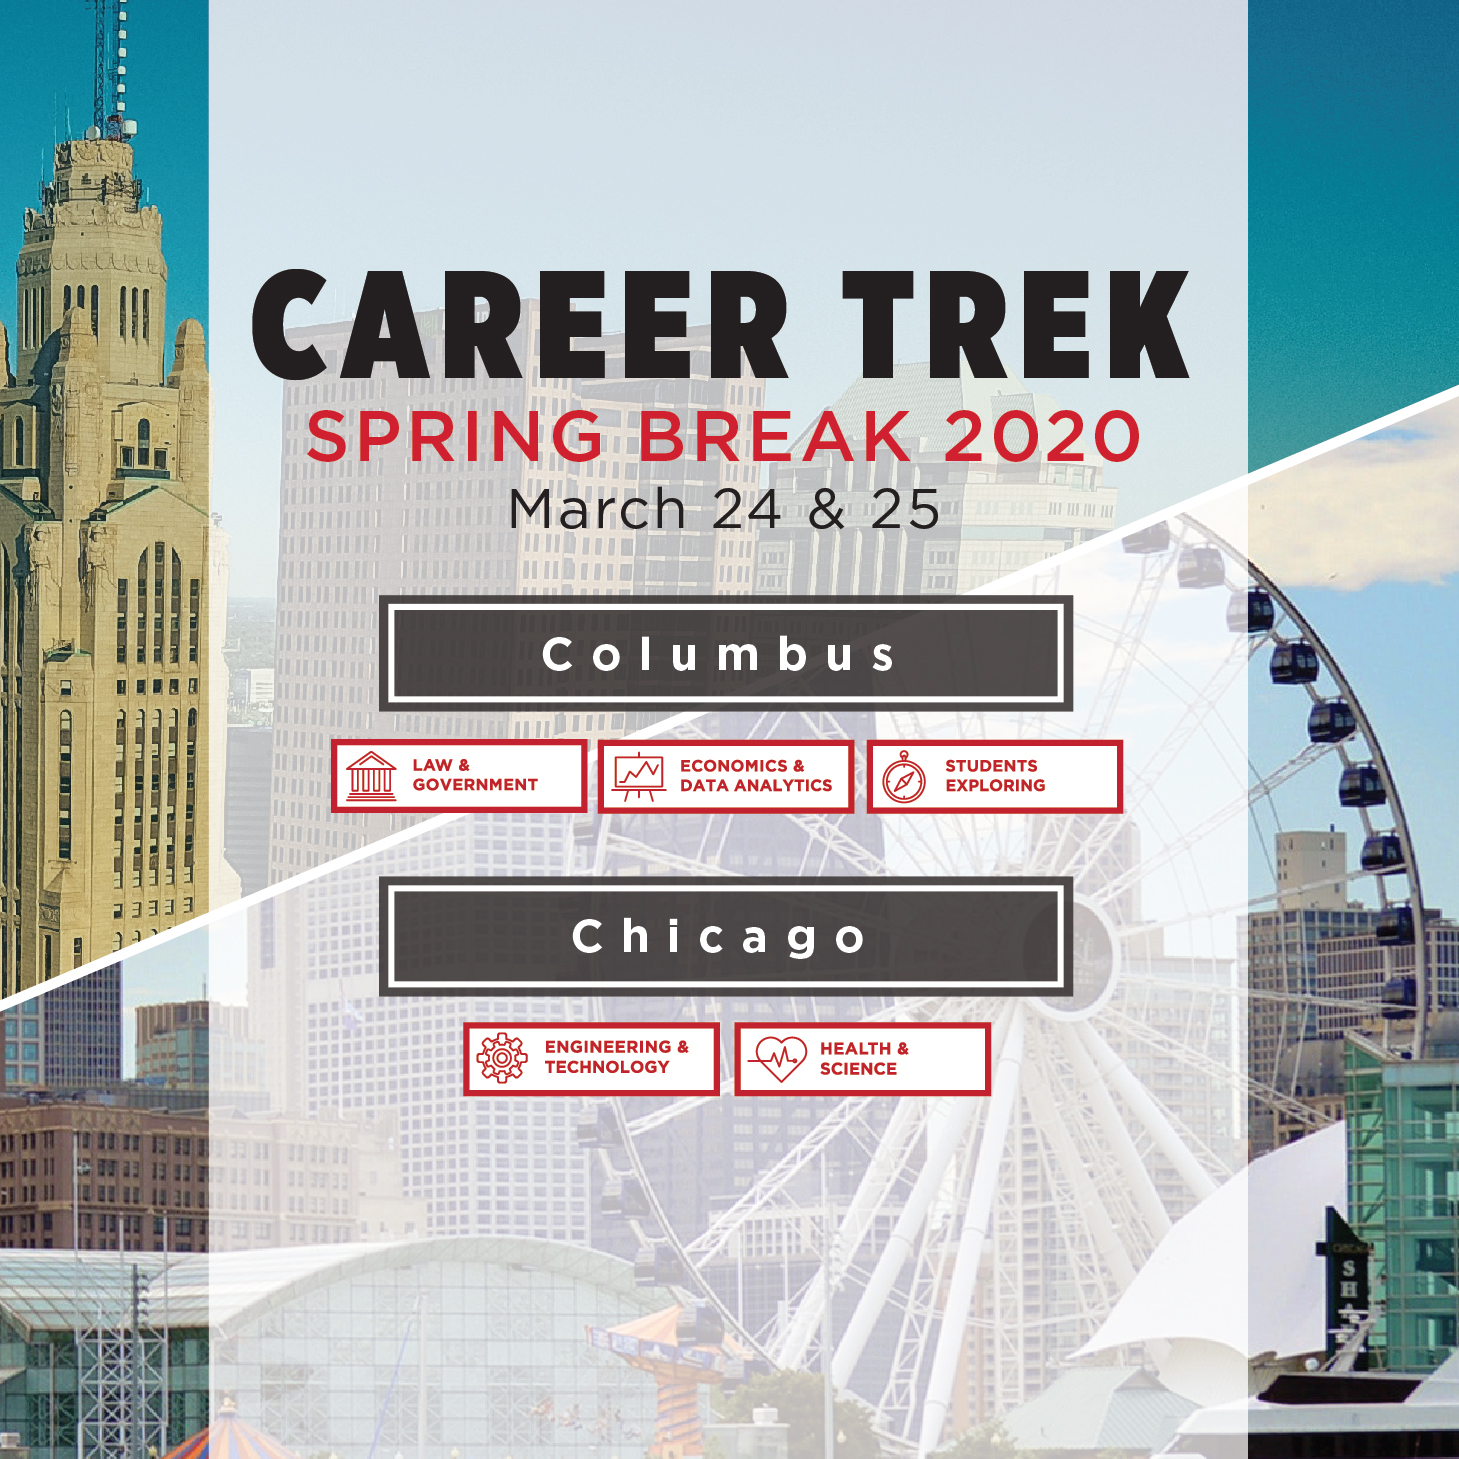 Career Trek Spring Break 2020, March 24 & 25. Columbus or Chicago.